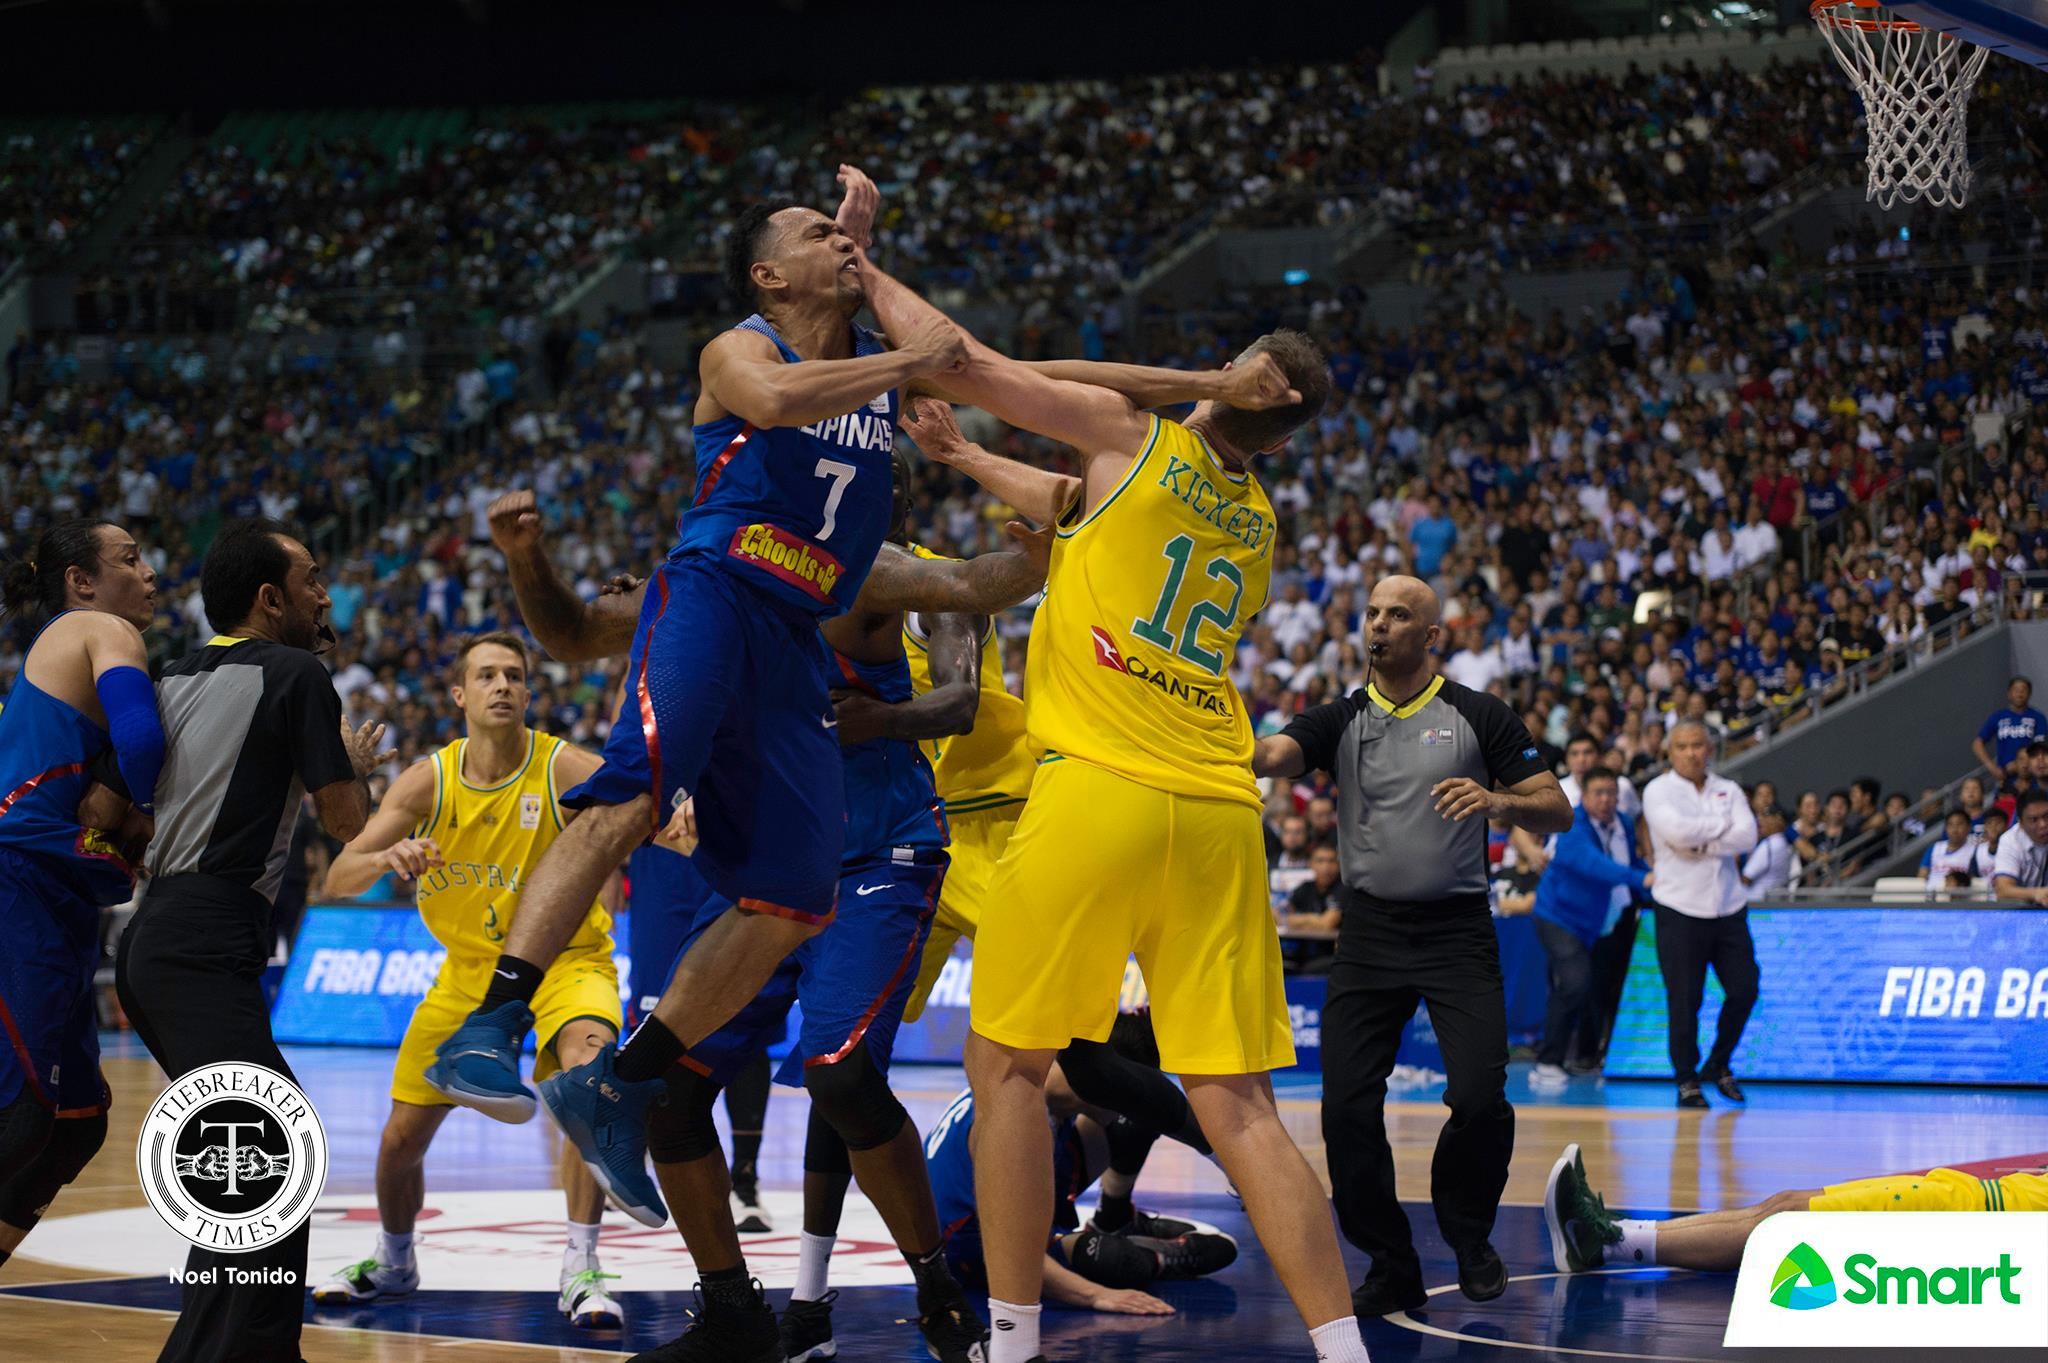 Tiebreaker Times The Gilas-Aussie brawl and the true meaning of 'brotherhood' Basketball Gilas Pilipinas News  Gilas Pilipinas Men Australia (Basketball) 2019 FIBA World Cup Qualifiers Group B 2019 FIBA World Cup Qualifiers